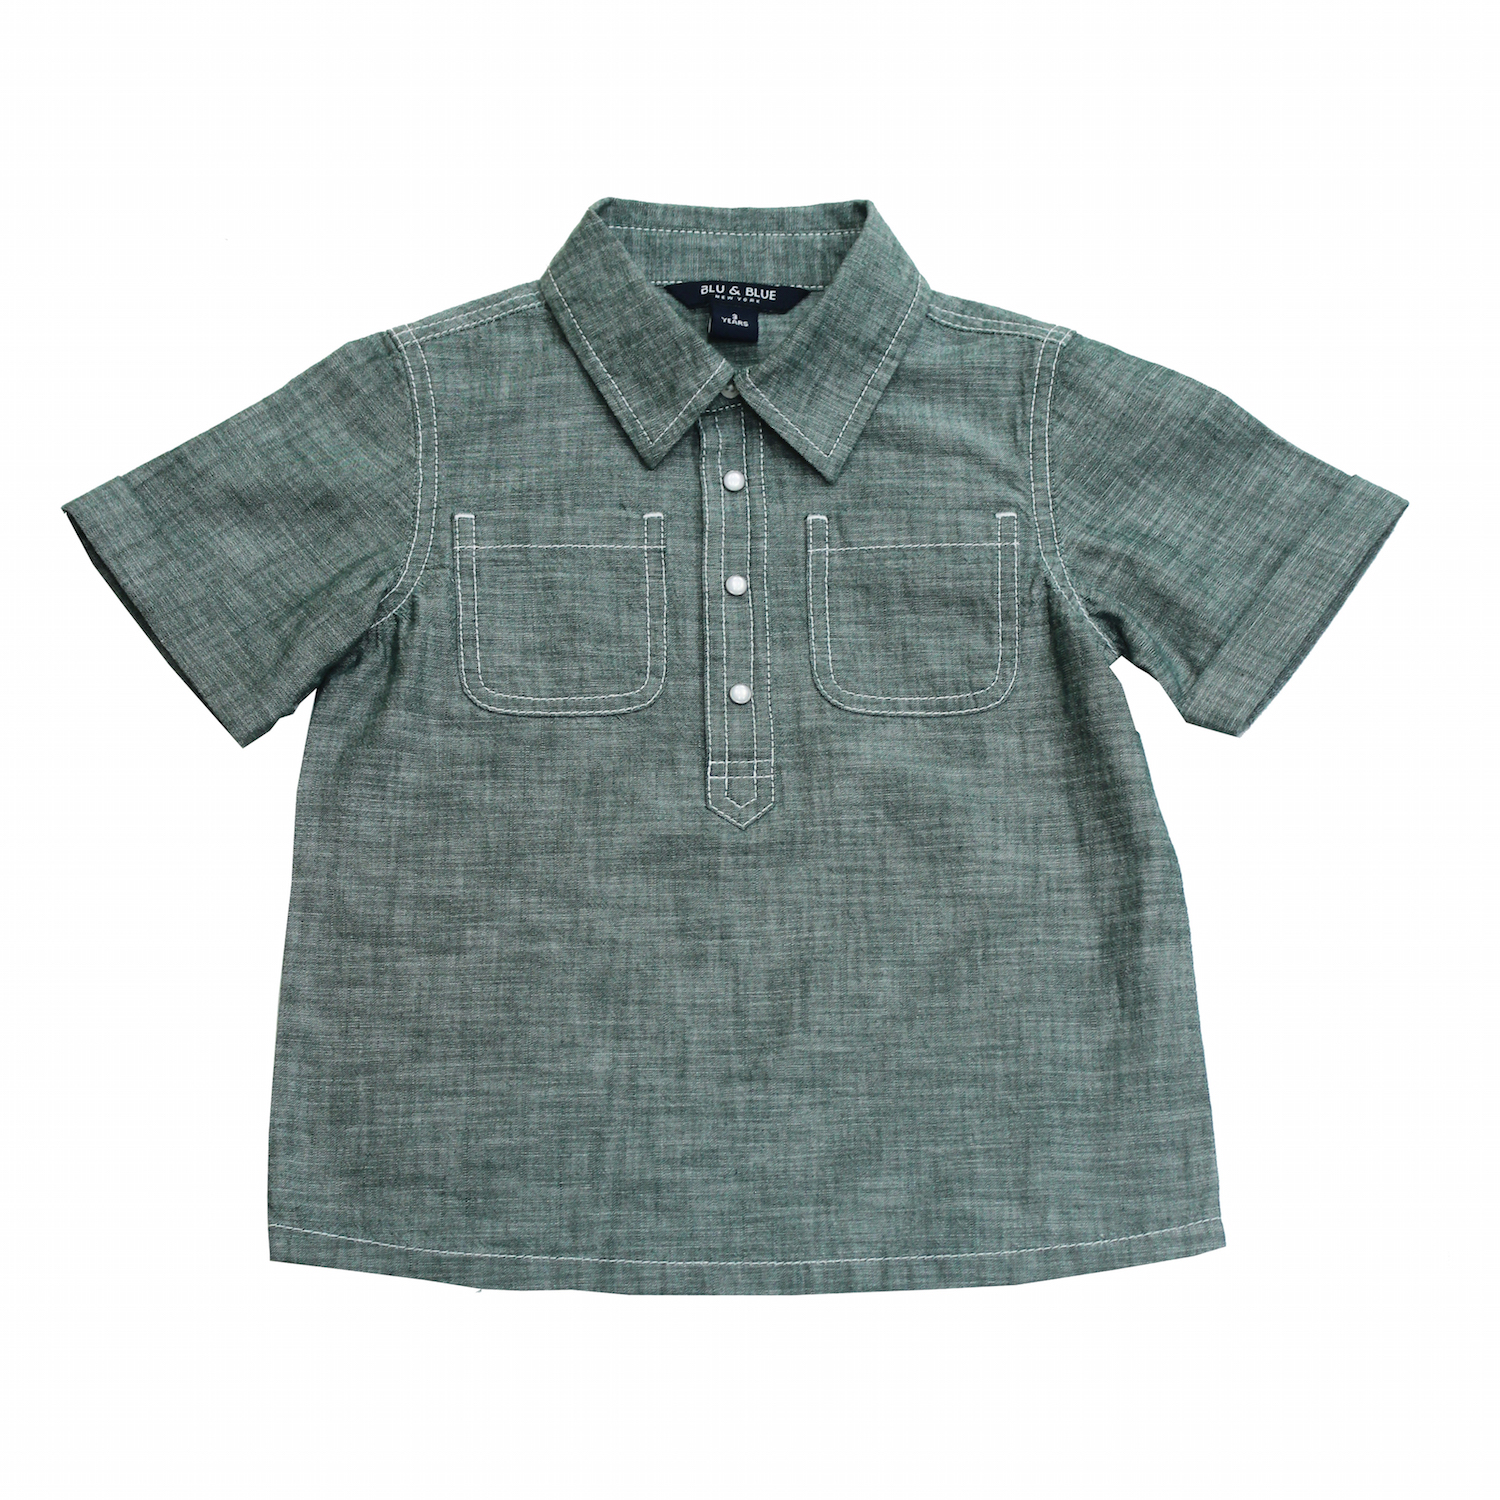 aa8af5662c4 Ryan Summer Green Chambray Shirt